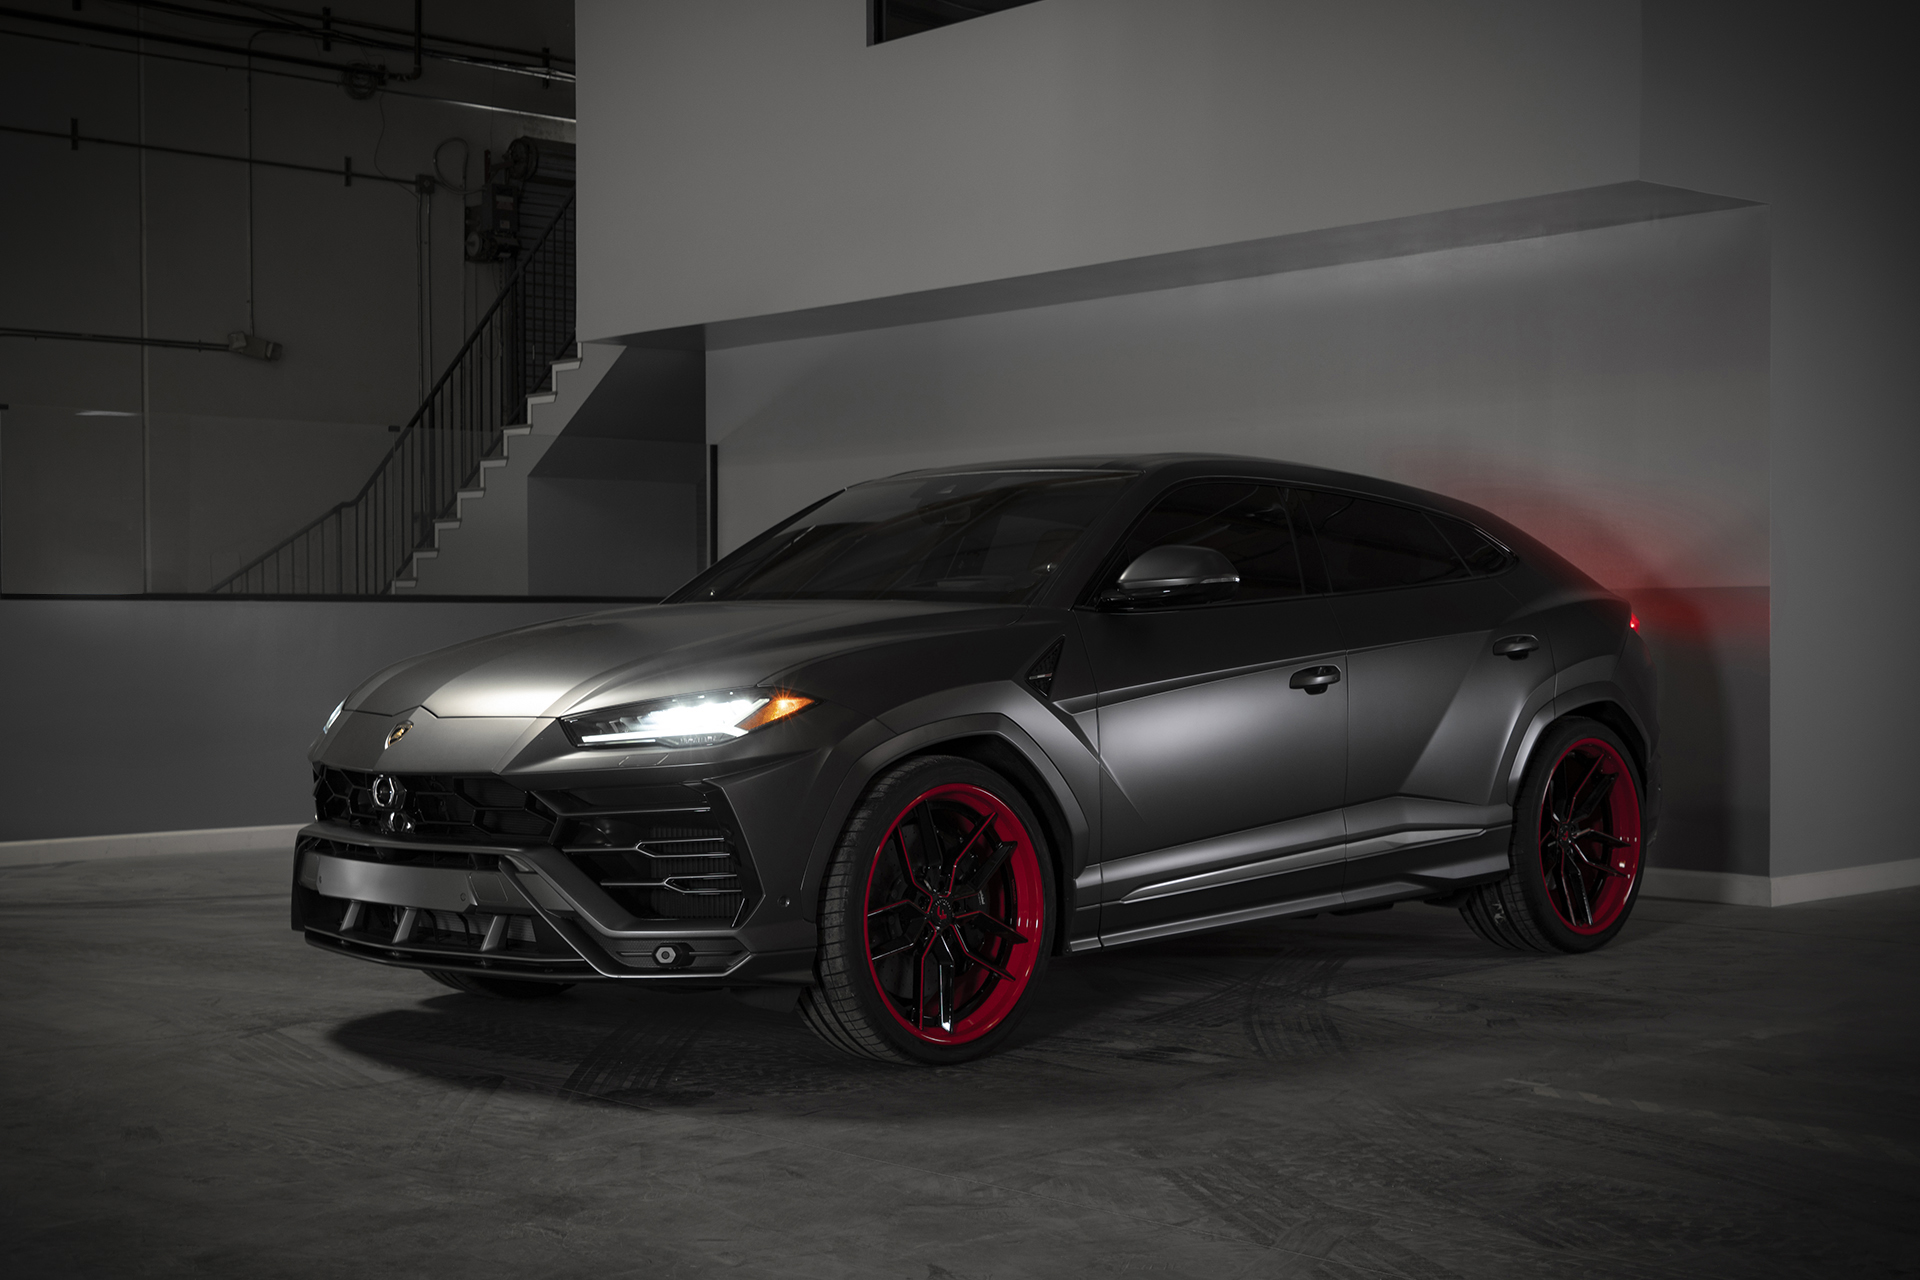 2019 Lamborghini Urus On 24 Inch Forgiato Wheels